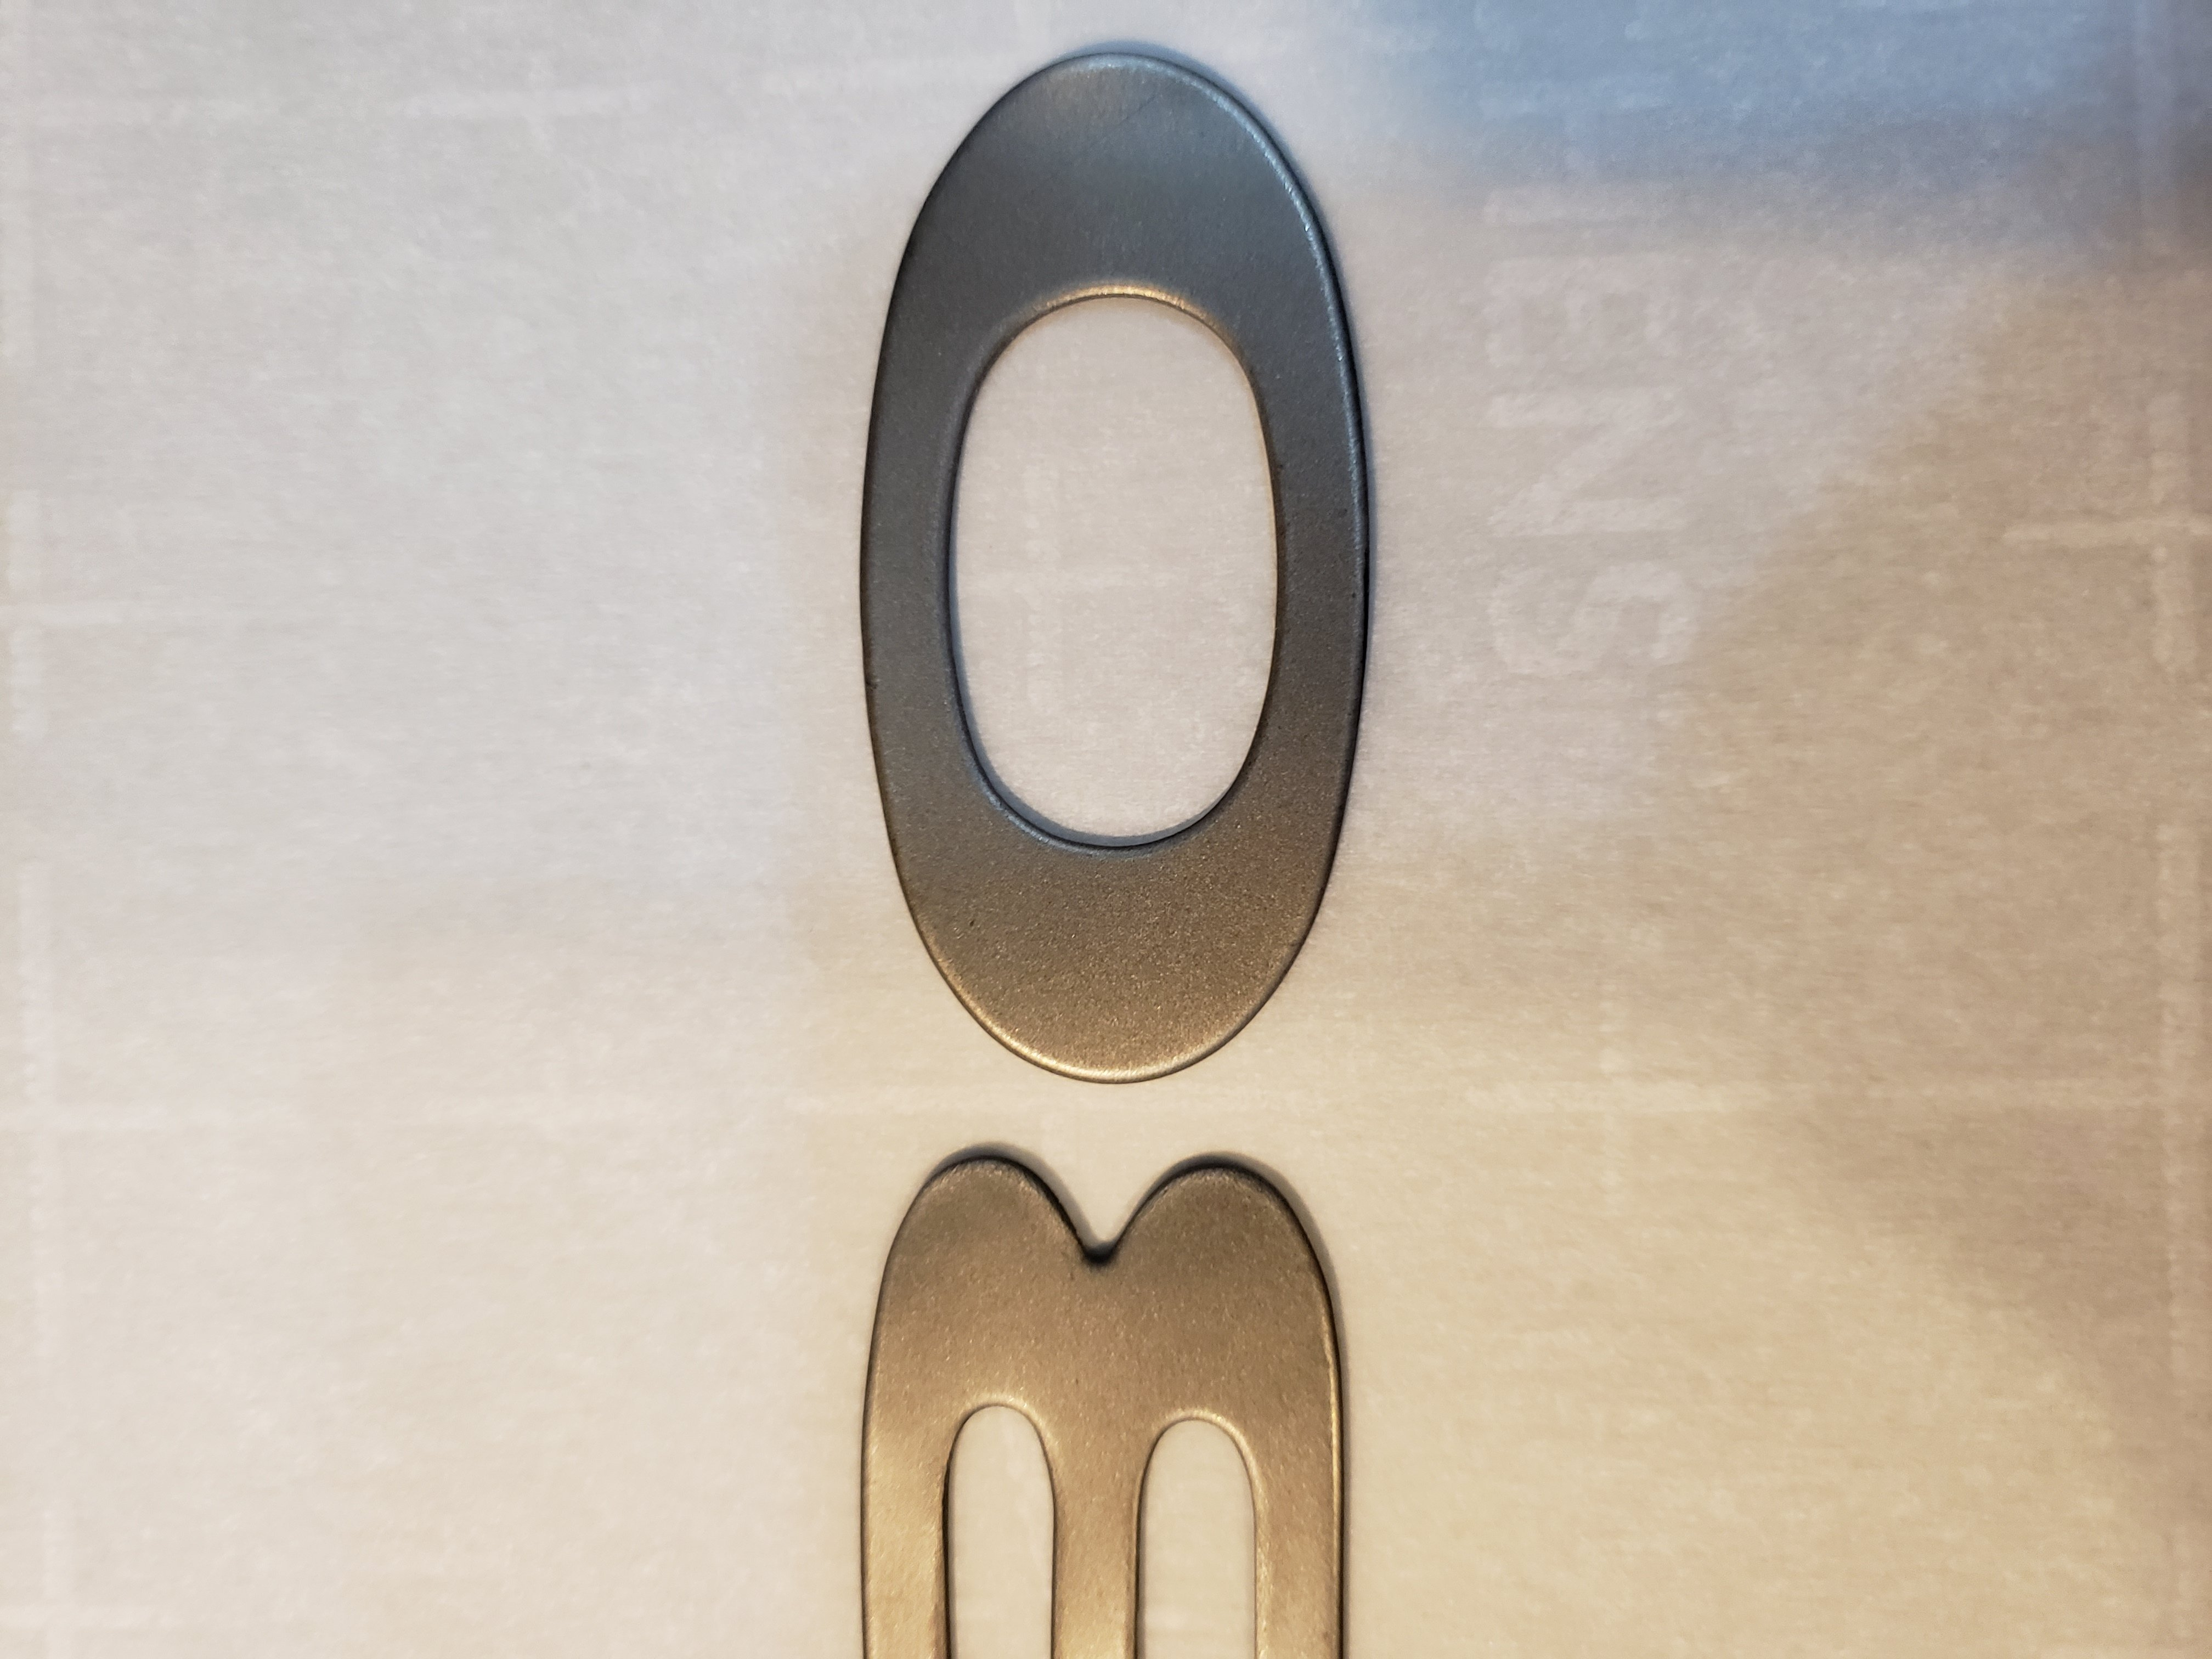 Extremely Rare Rear 3000GT Emblem In Mint Condition-20191003_173808_1570139020444.jpg